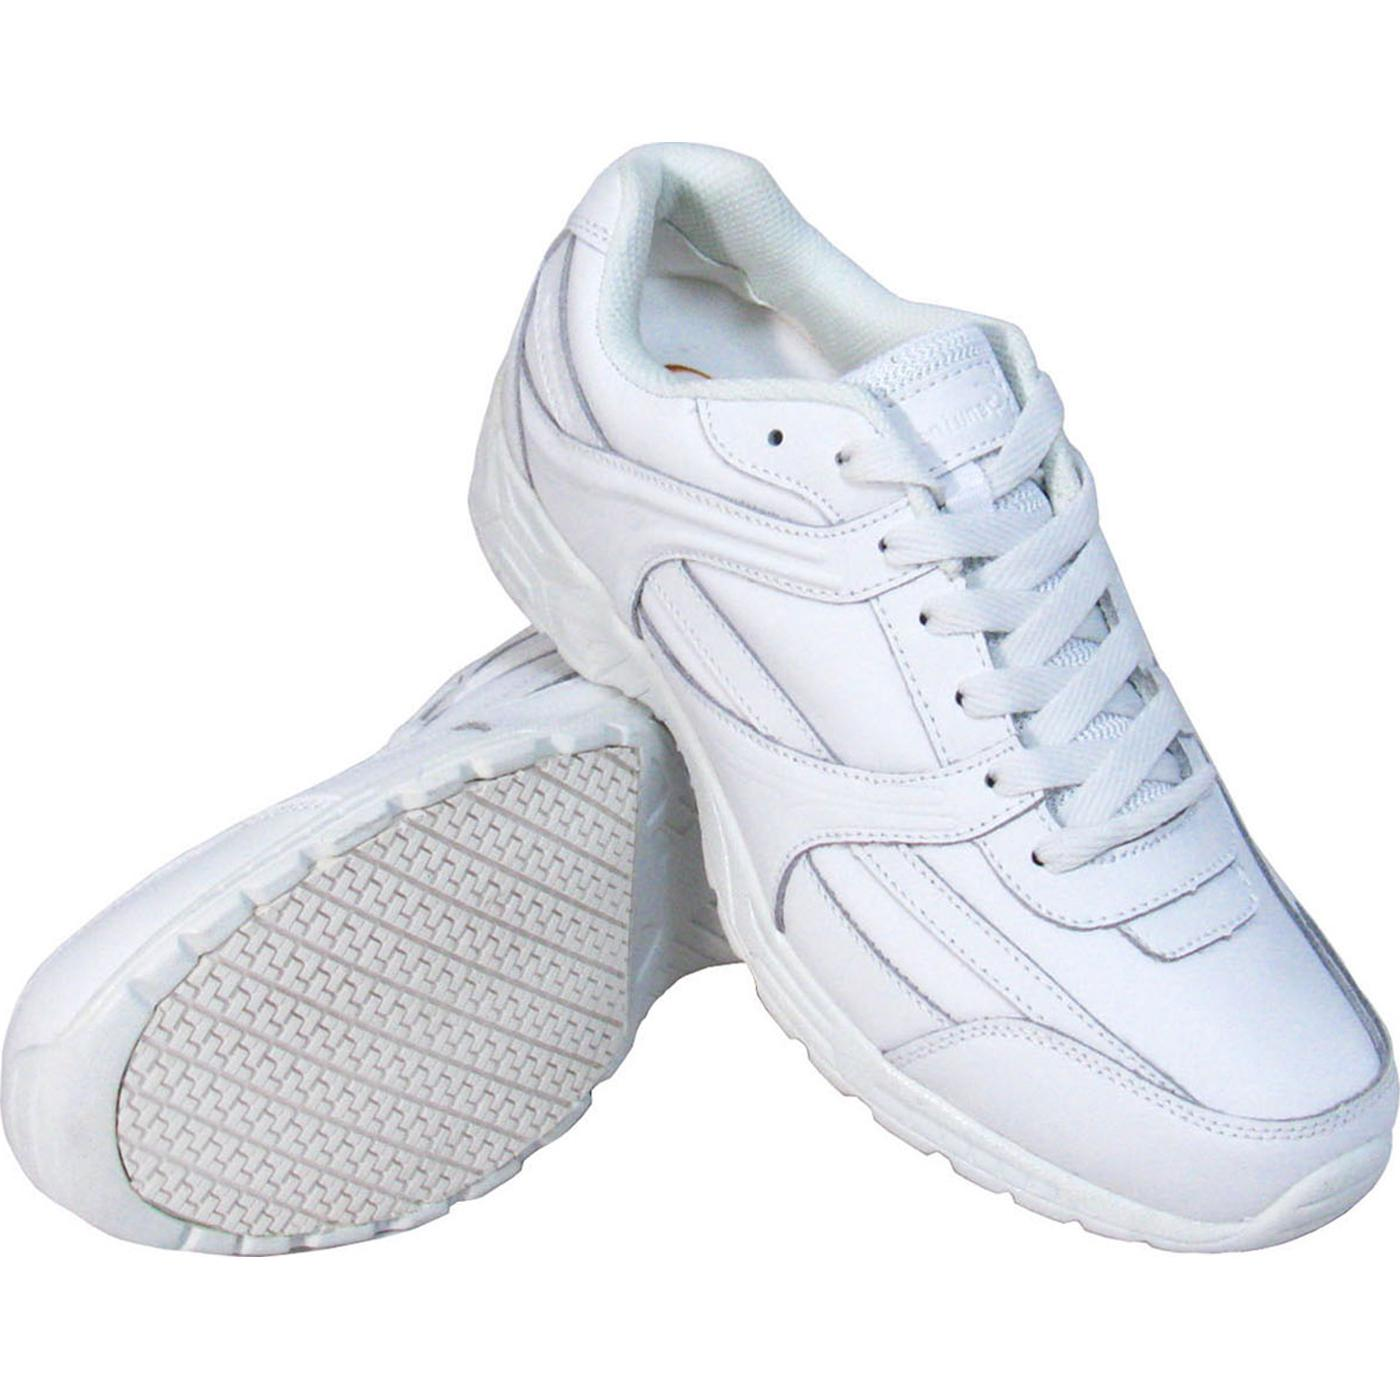 13967466bee02c Genuine Grip Women s Slip-Resistant Athletic Shoe